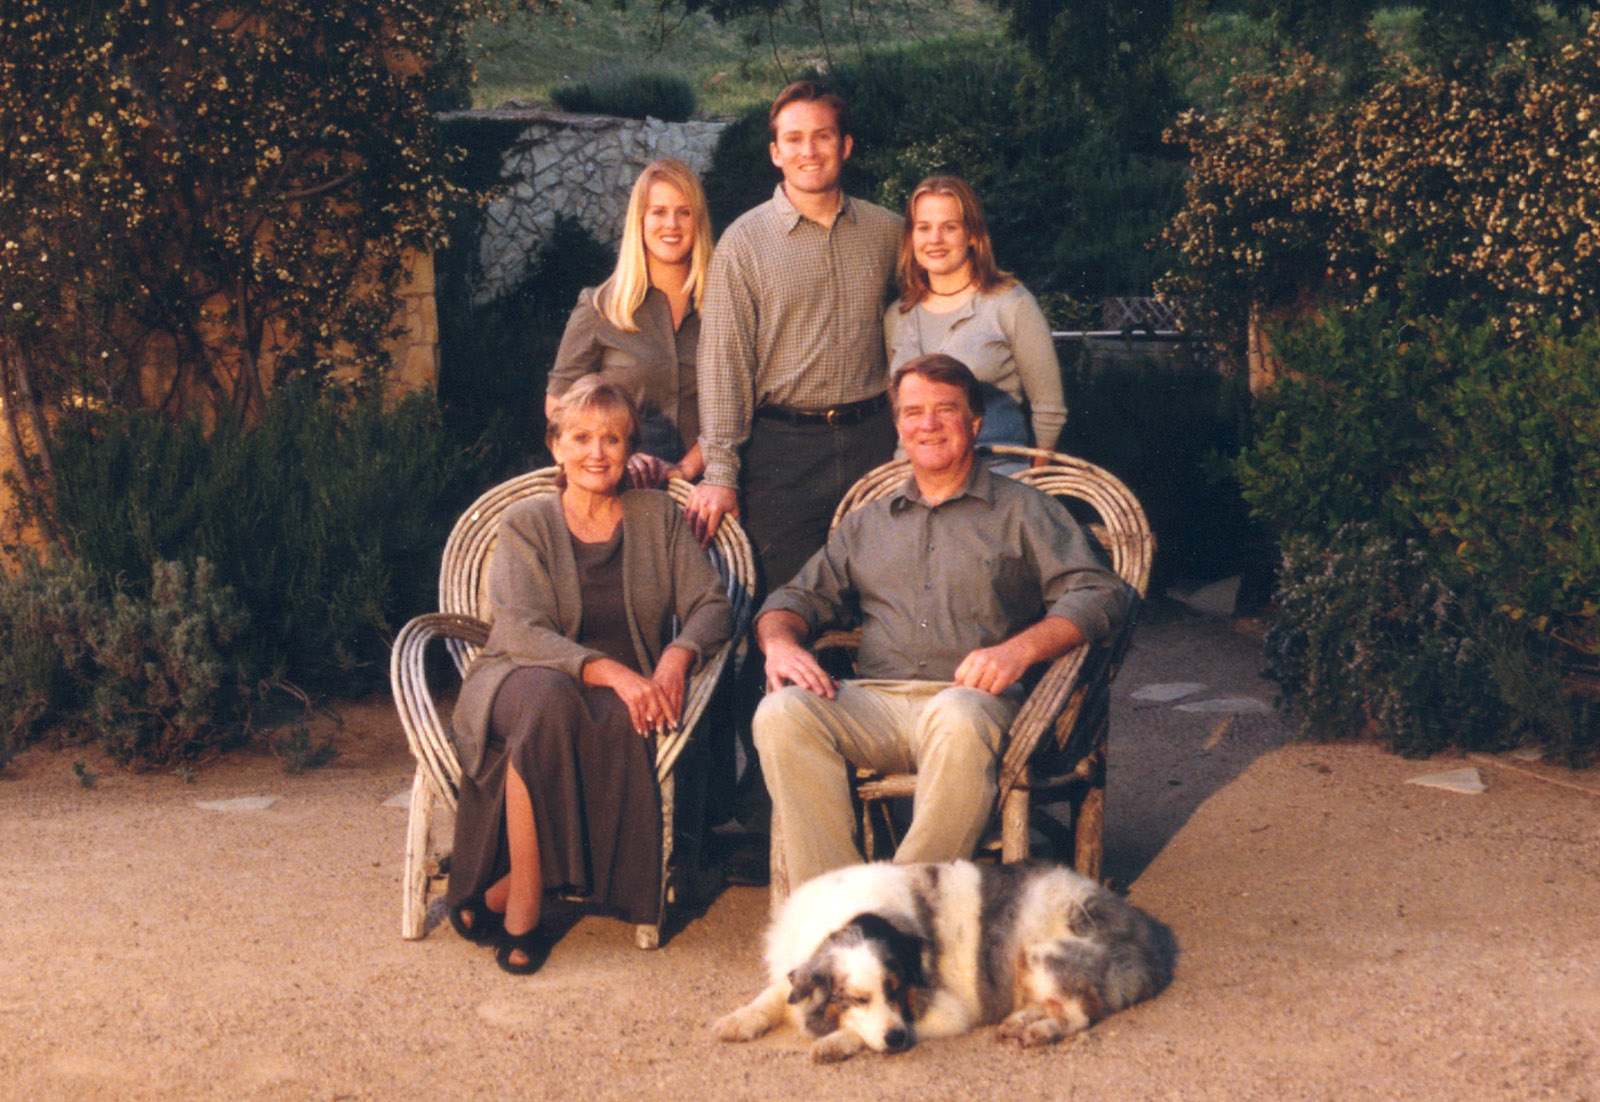 The Rice Family 2002